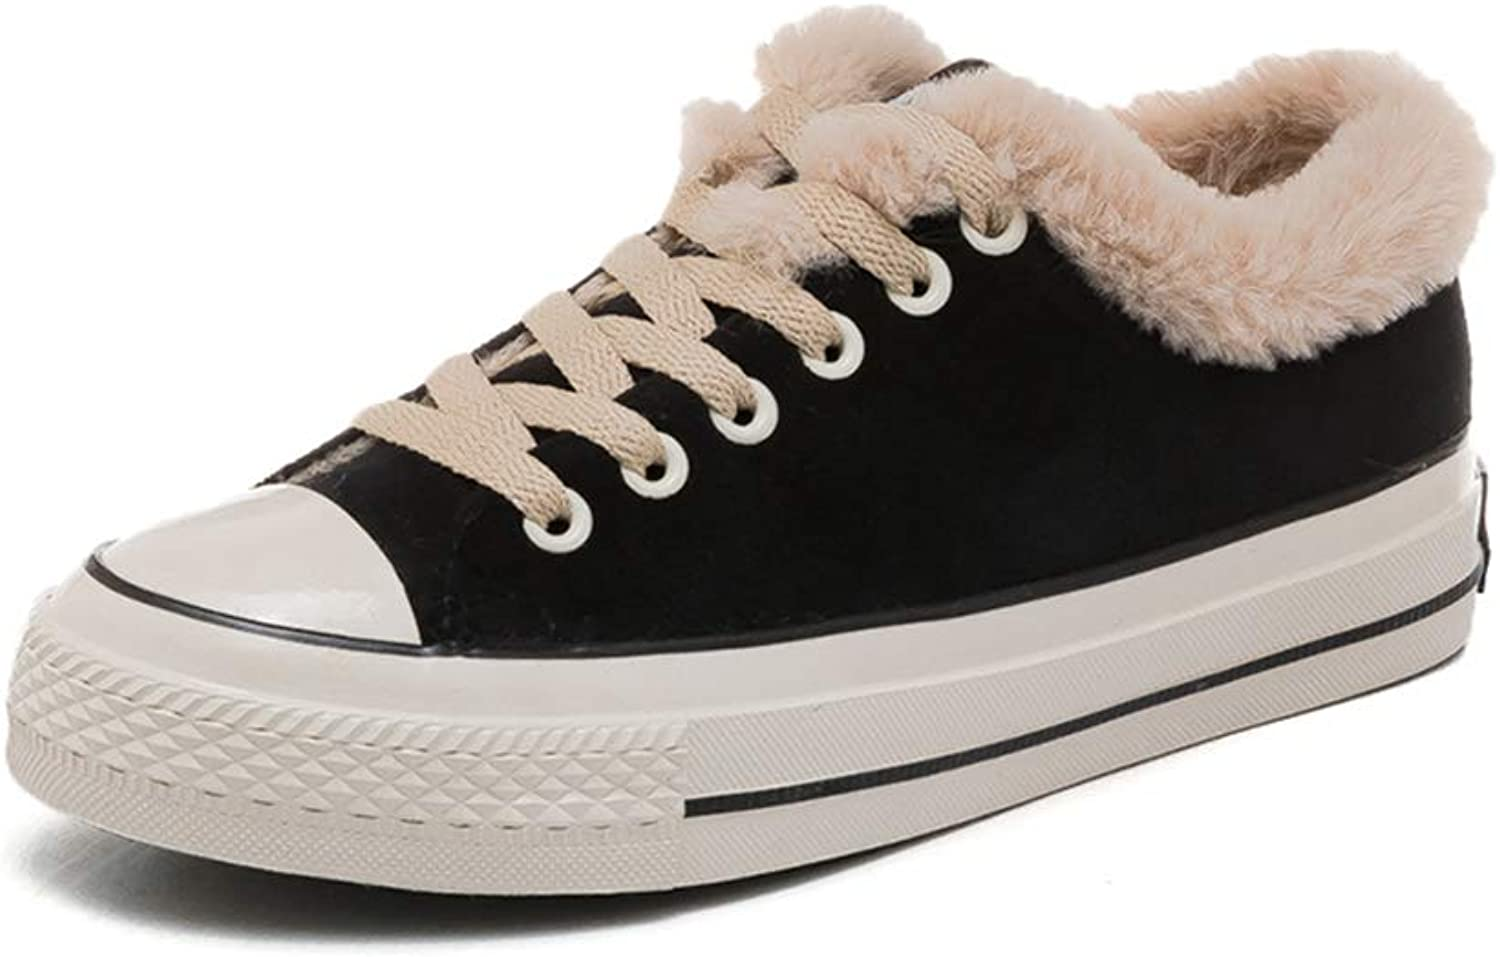 Womens Low Heel Flat Platform Fur Lined Ankle Boots Fashion Round Toe Rubber Sole Lace Up Slip On Winter Keep Warm Walking shoes